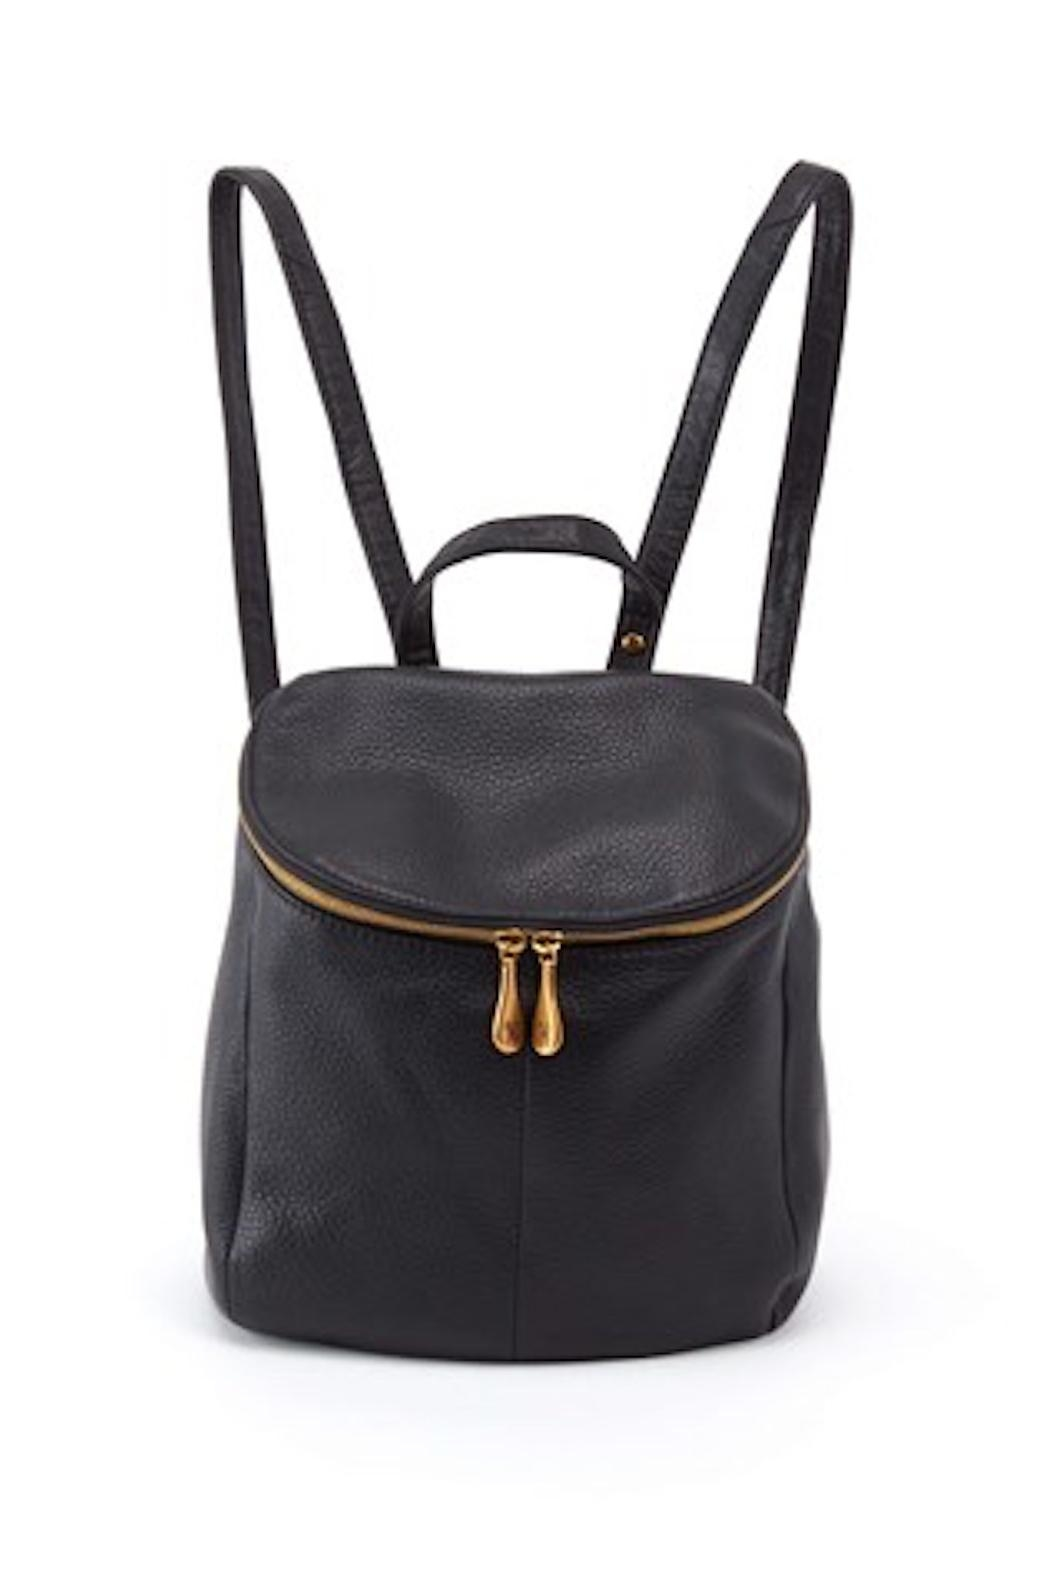 9f50494674 Hobo River Leather Backpack from Hudson Valley by Maria Luisa ...